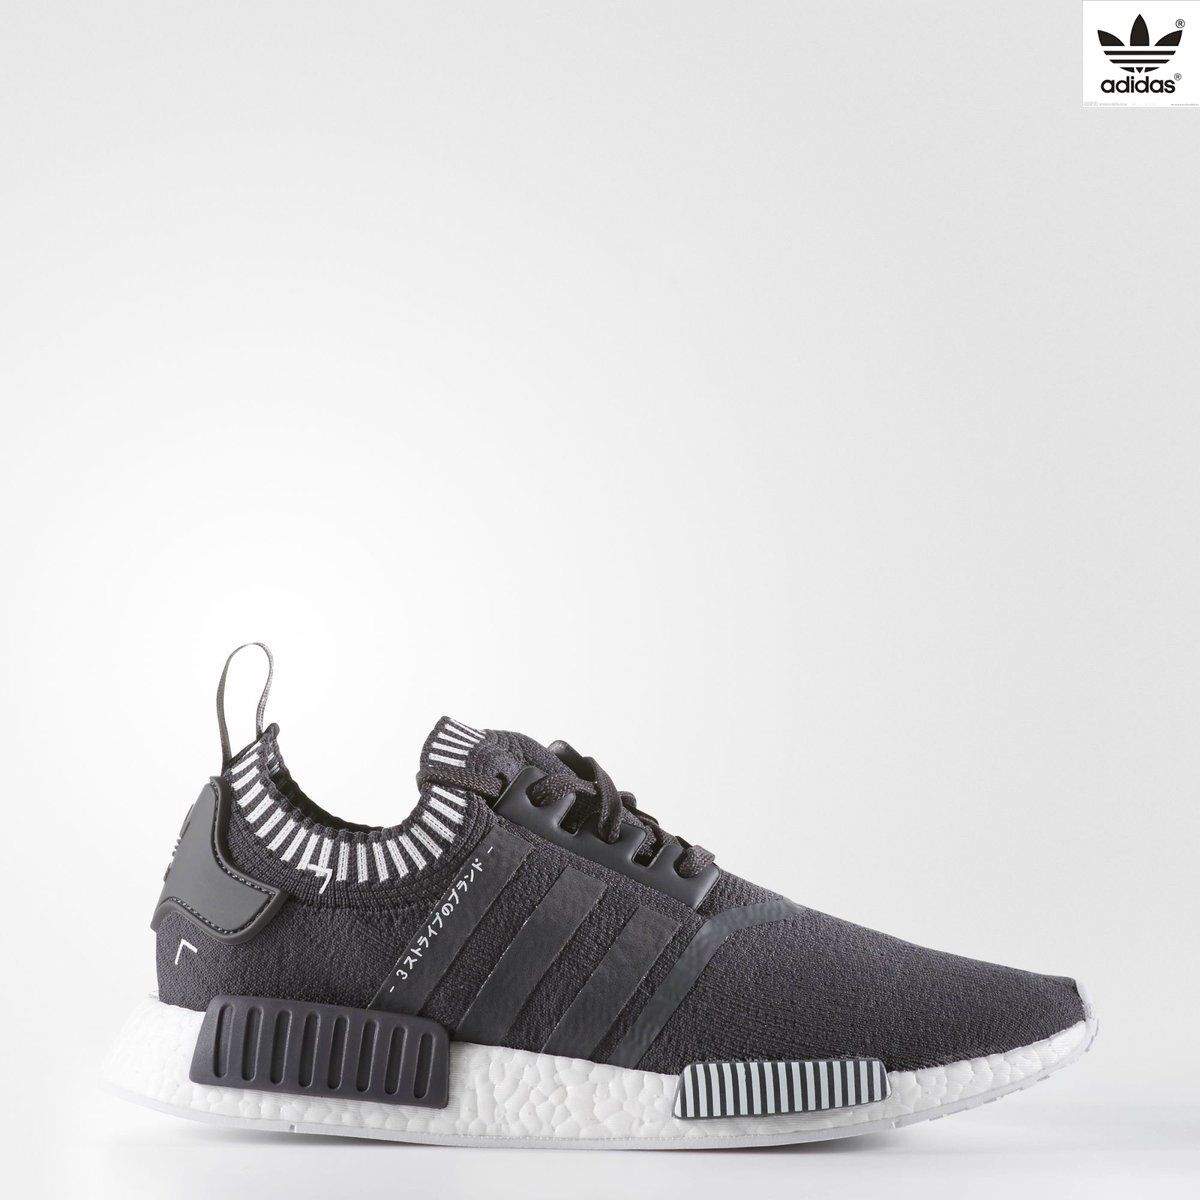 factory price adidas nmd r1 primeknit solid grey japan pack bed25 ... 3304f84e8